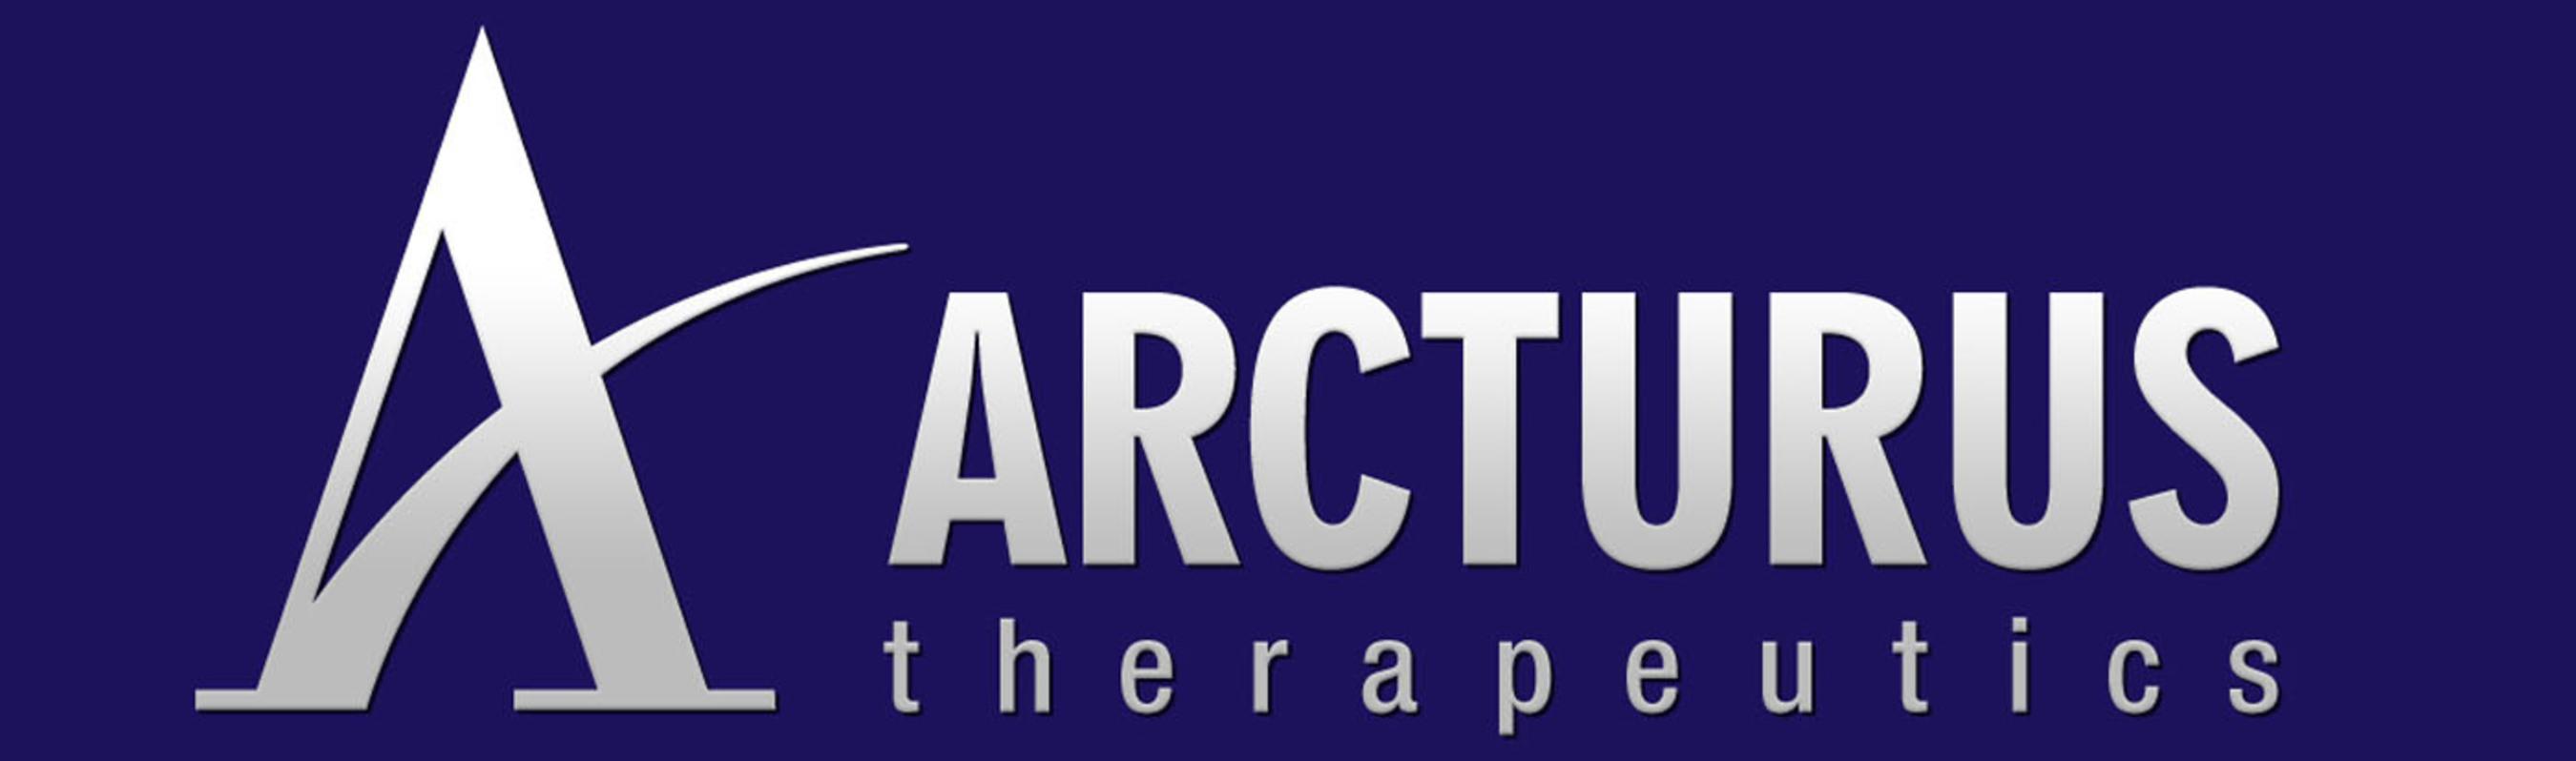 Arcturus Therapeutics Logo.